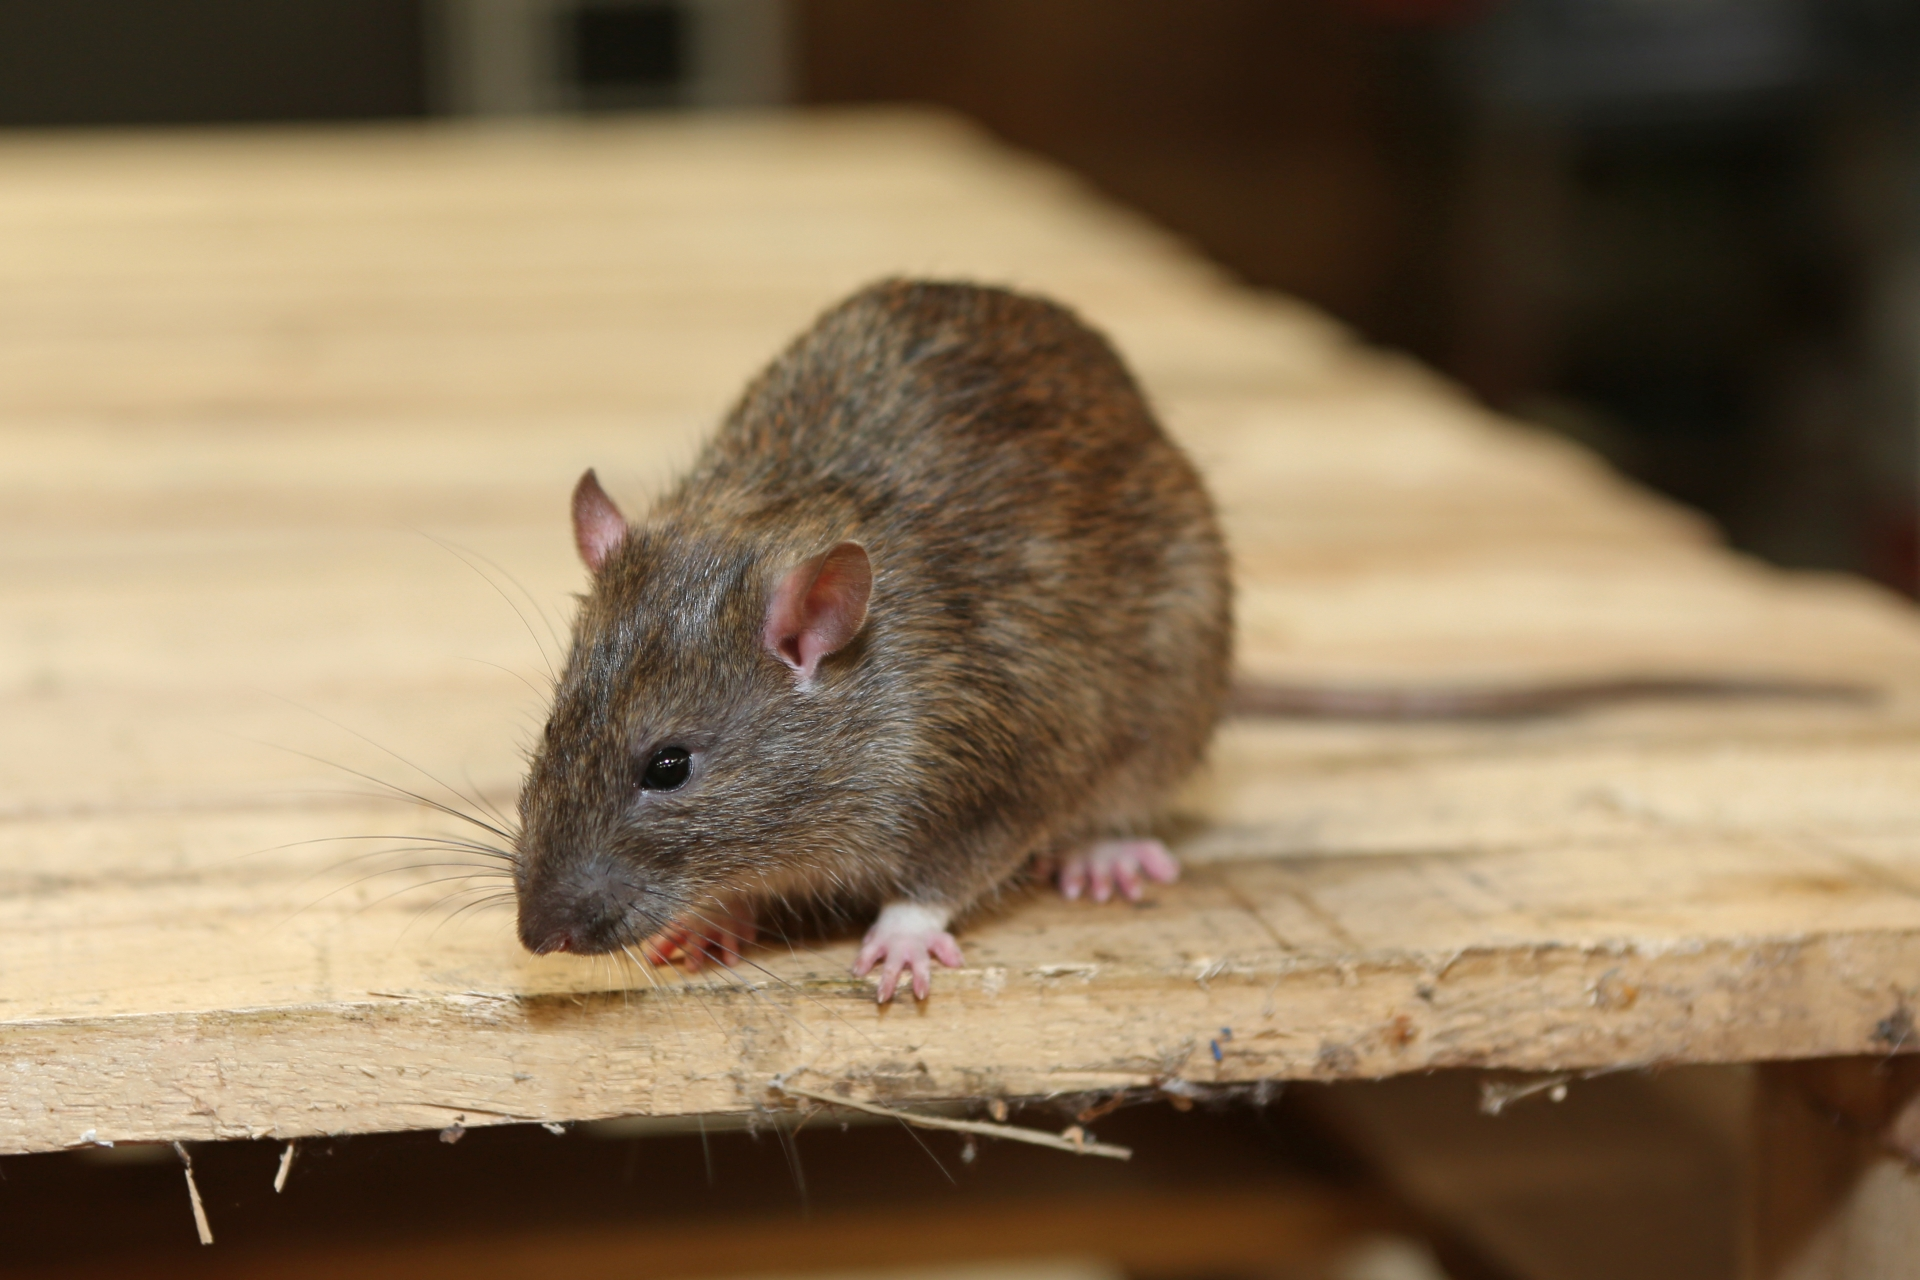 Rat Control, Pest Control in Croydon, Addiscombe, Selhurst, CR0. Call Now 020 8166 9746